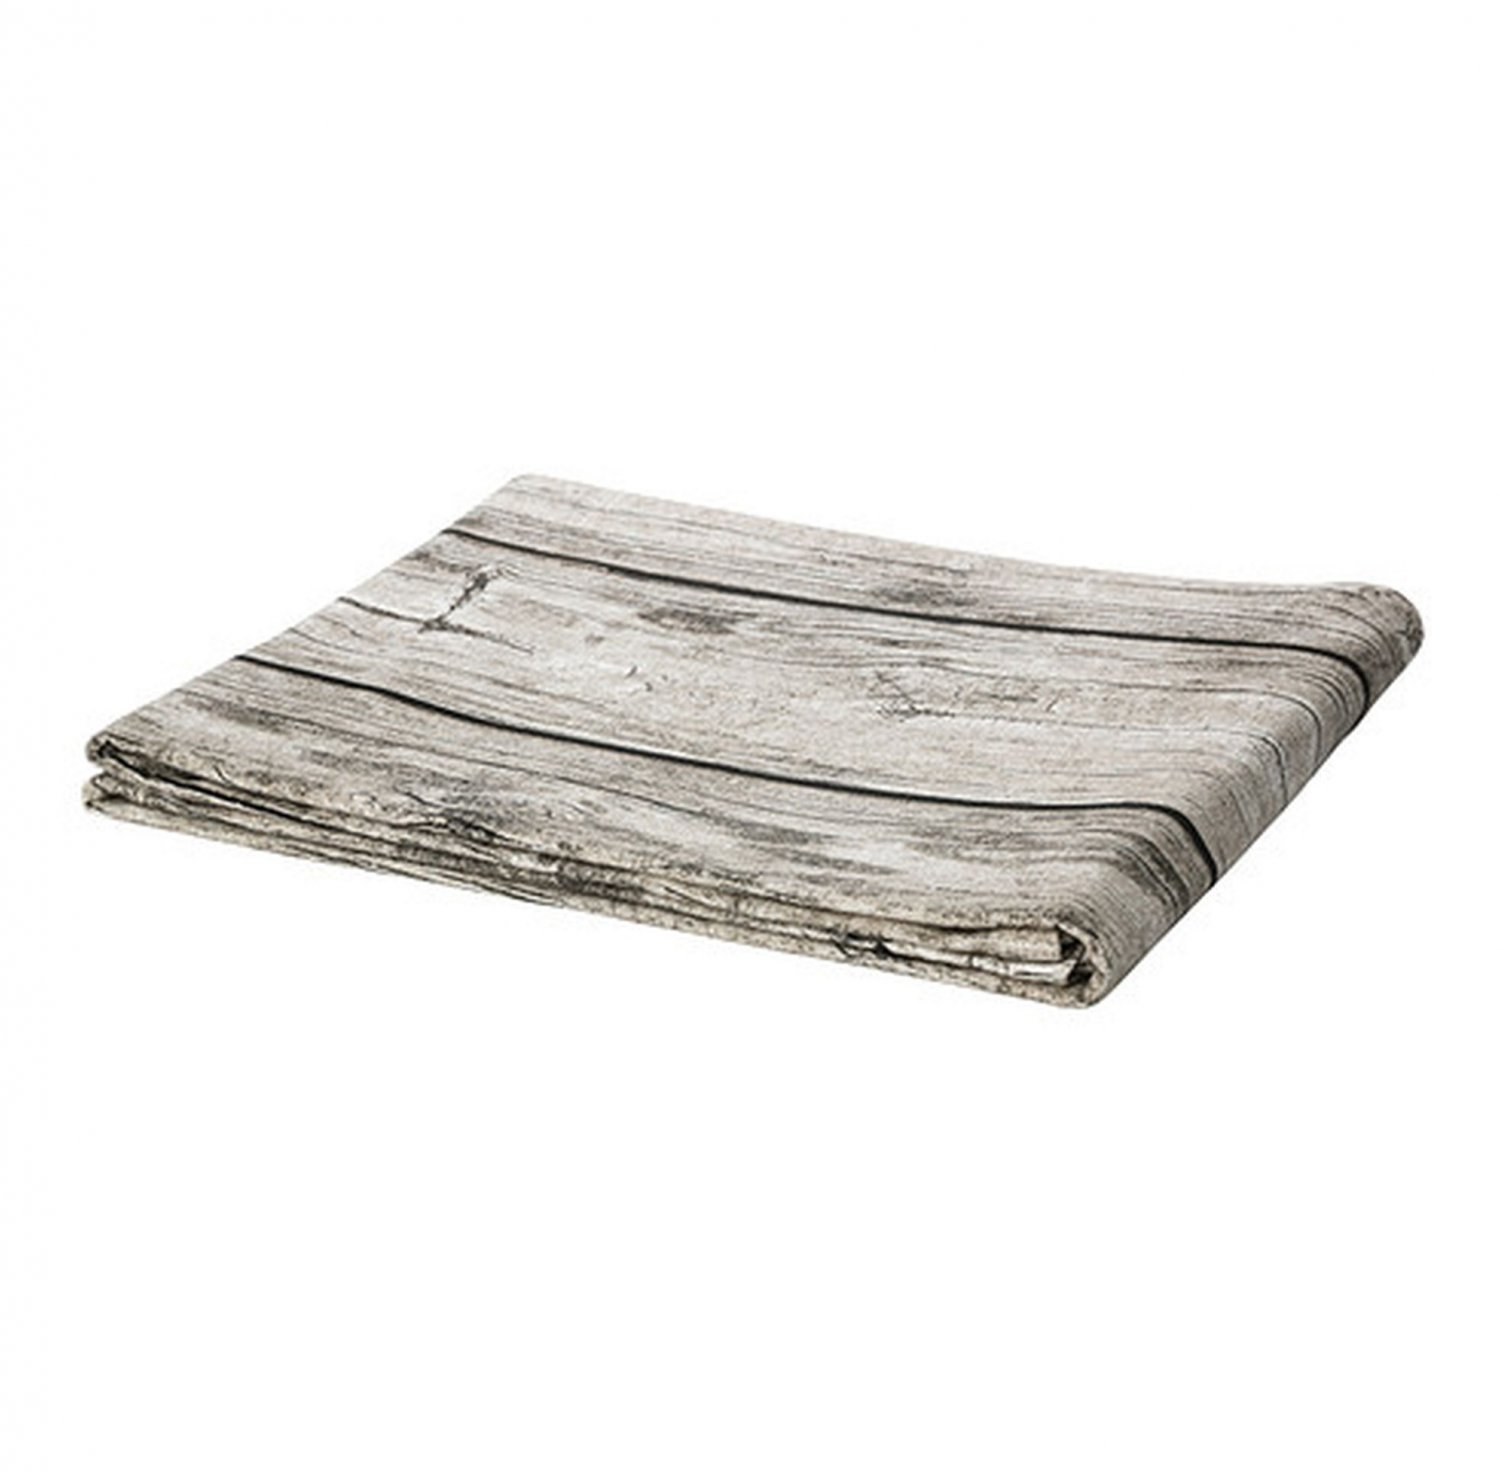 IKEA SOLFINT TABLECLOTH Wood Design Natural PHOTOGRAPH Weathered Barnboard XMAS